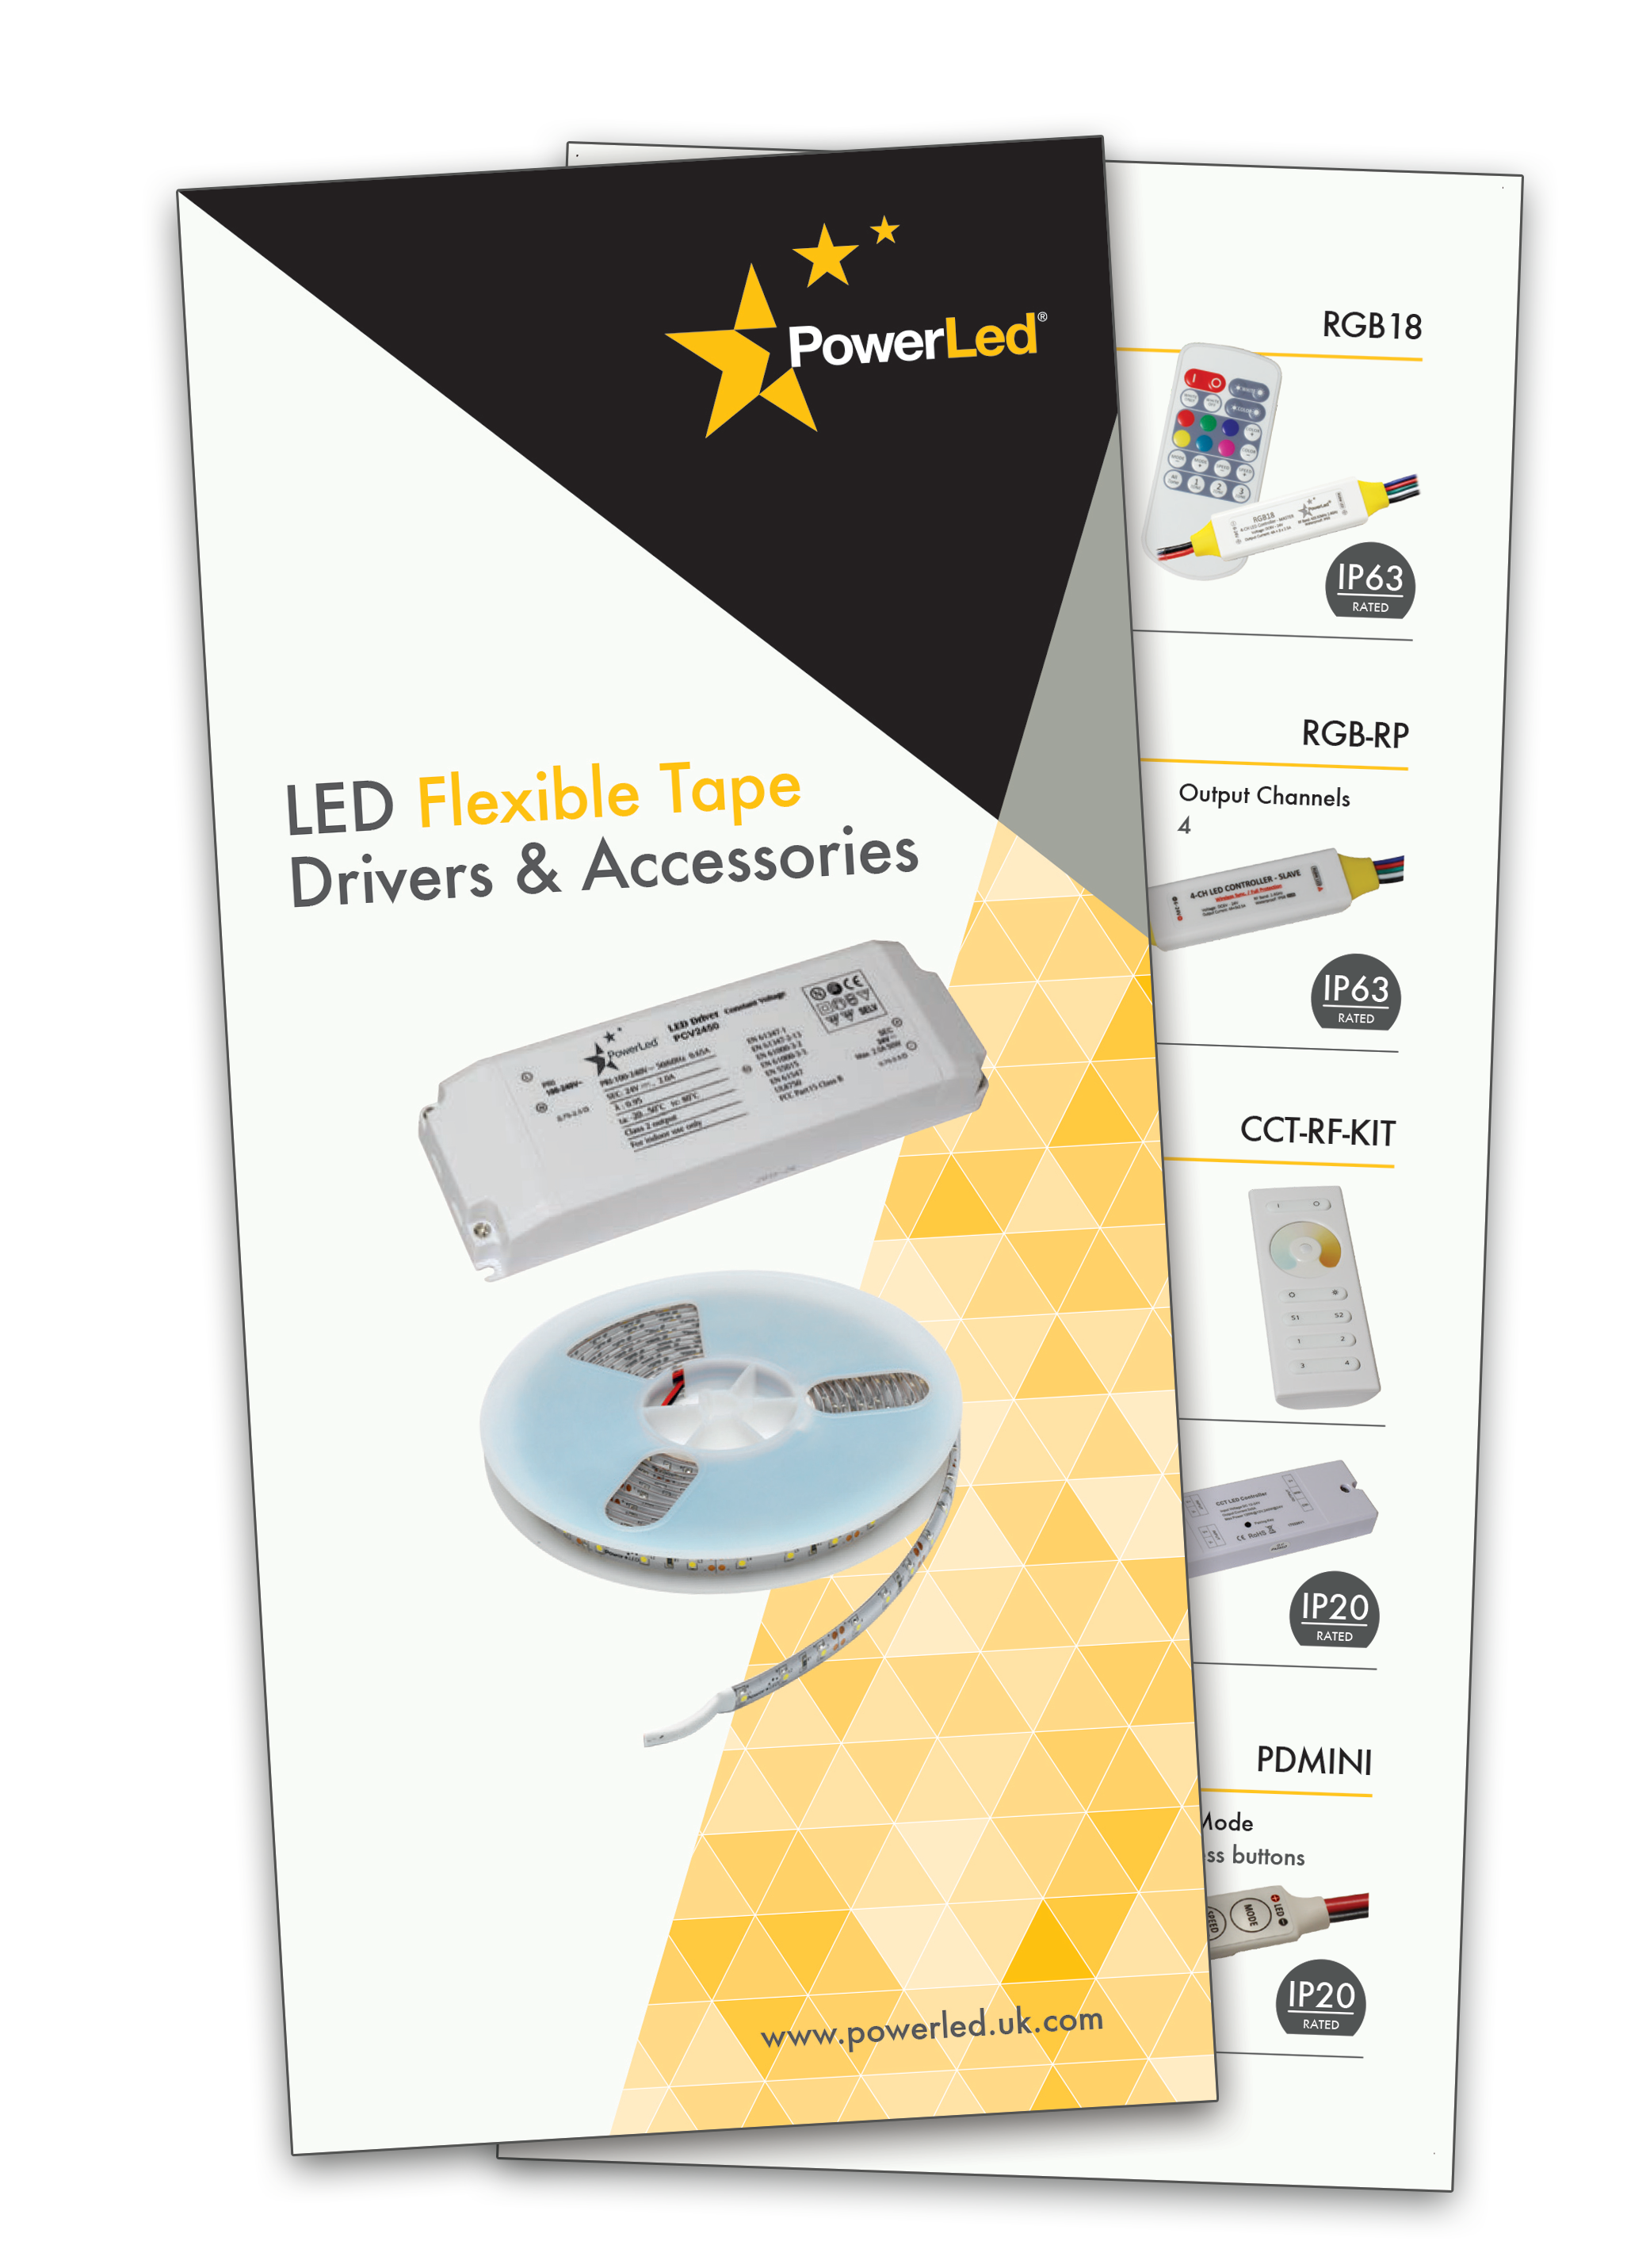 PowerLed LED Flexible Tape Drivers and Accessories Leaflet